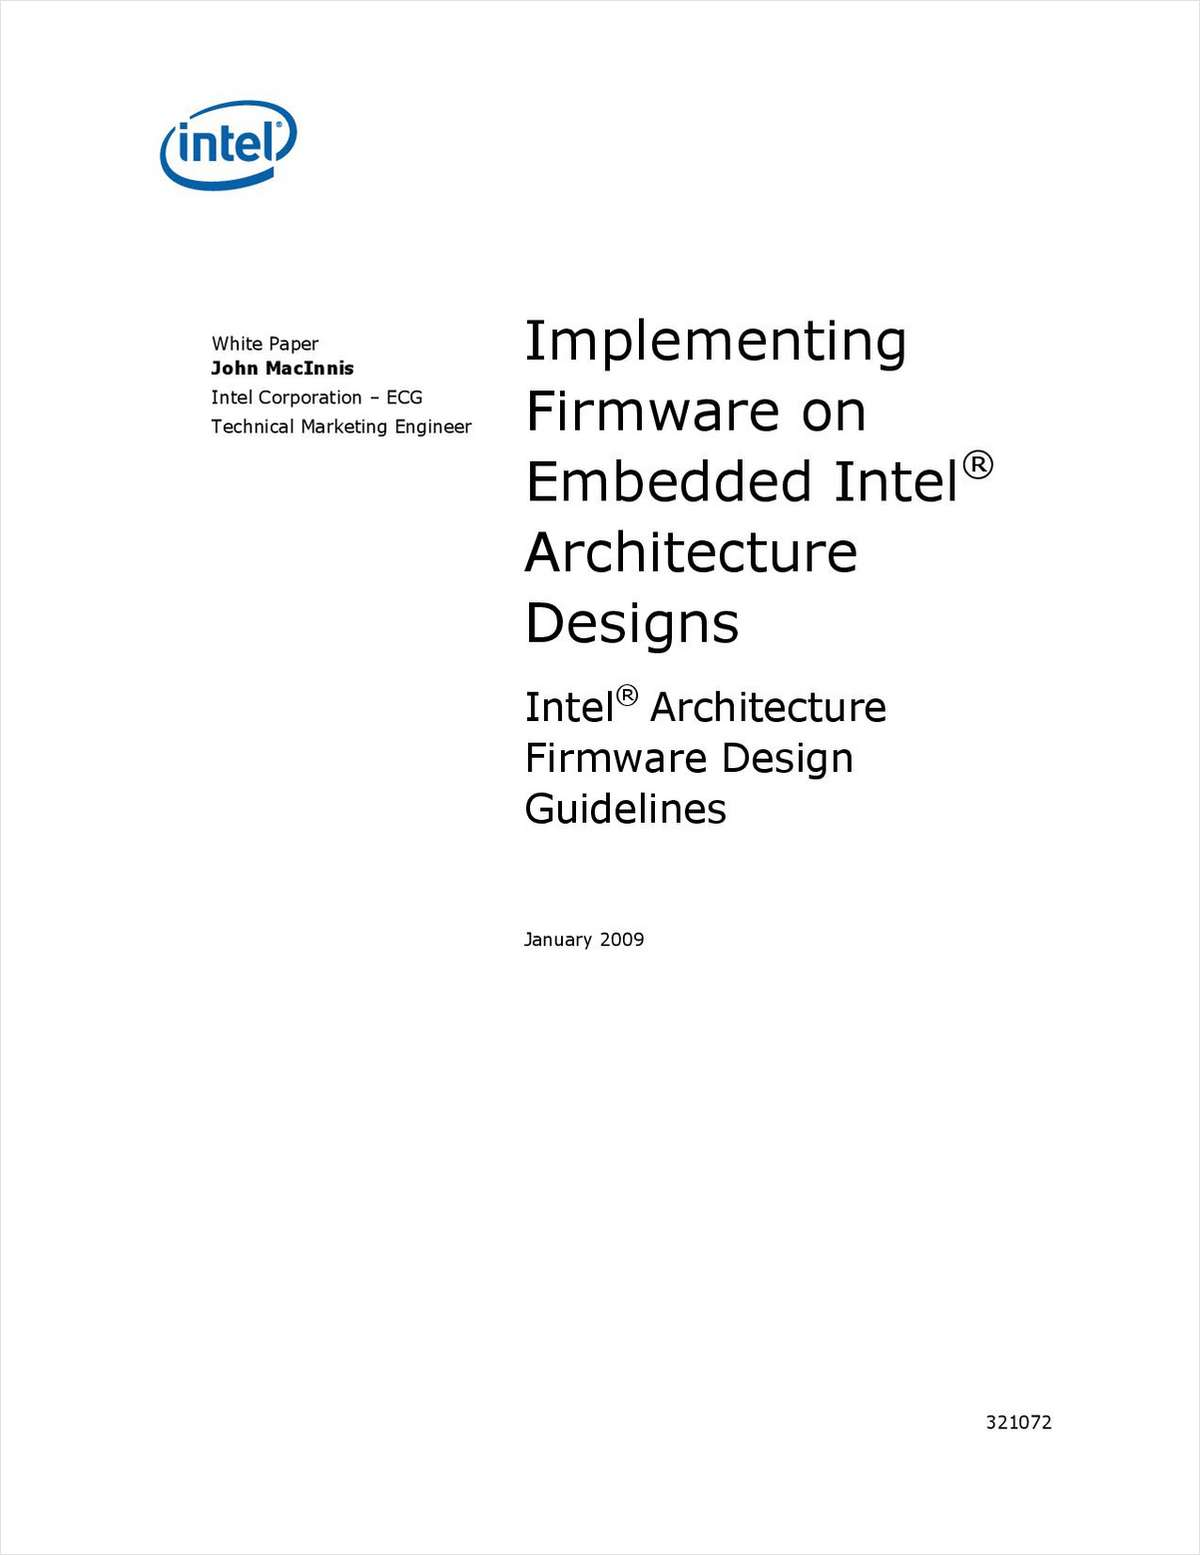 Implementing Firmware on Embedded Intel® Architecture:  Design Guidelines